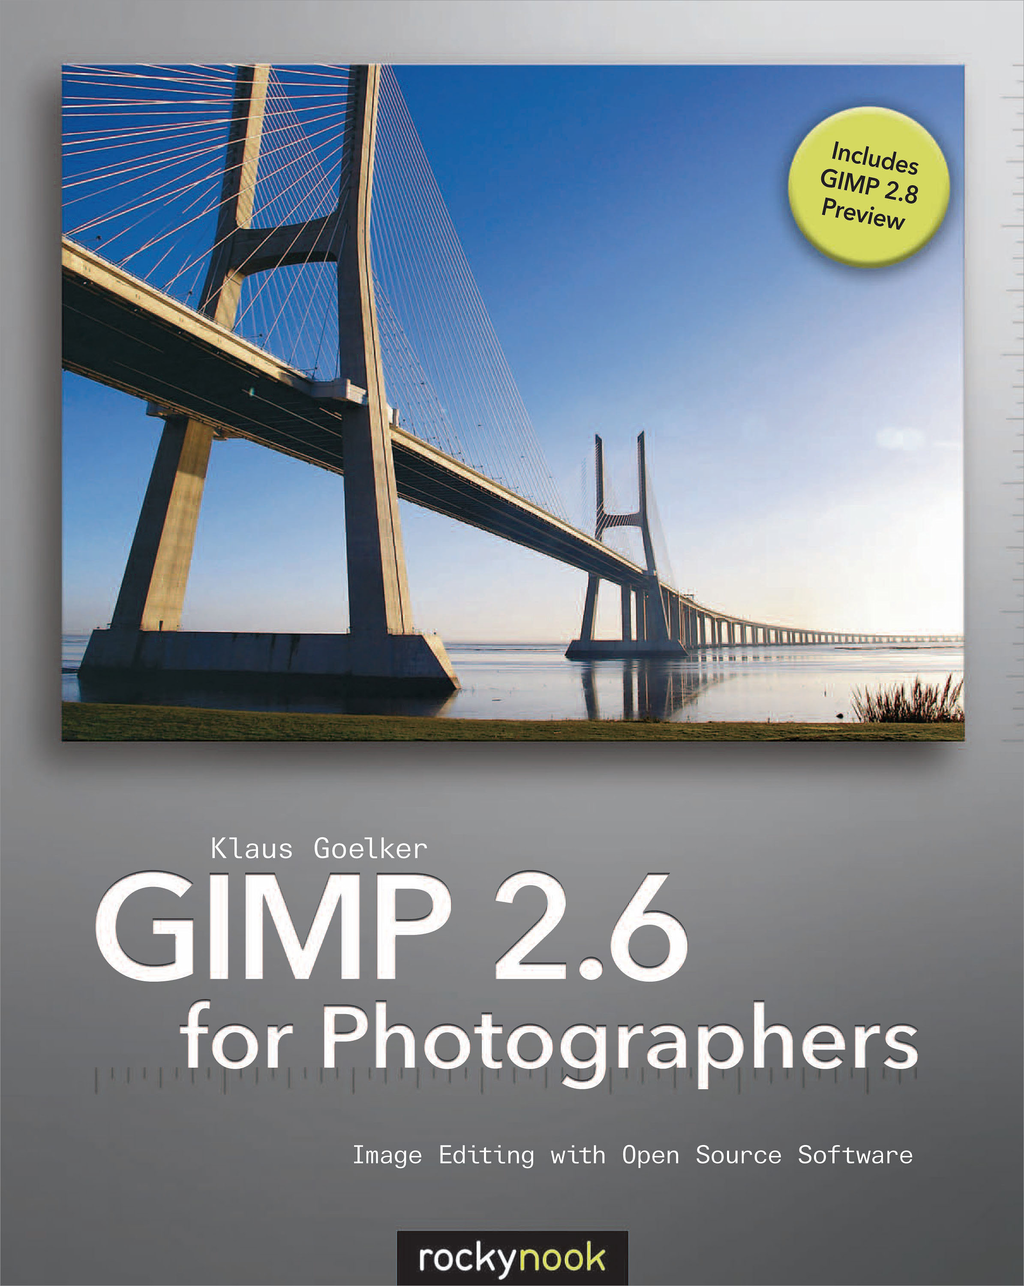 GIMP 2.6 for Photographers By: Klaus Goelker